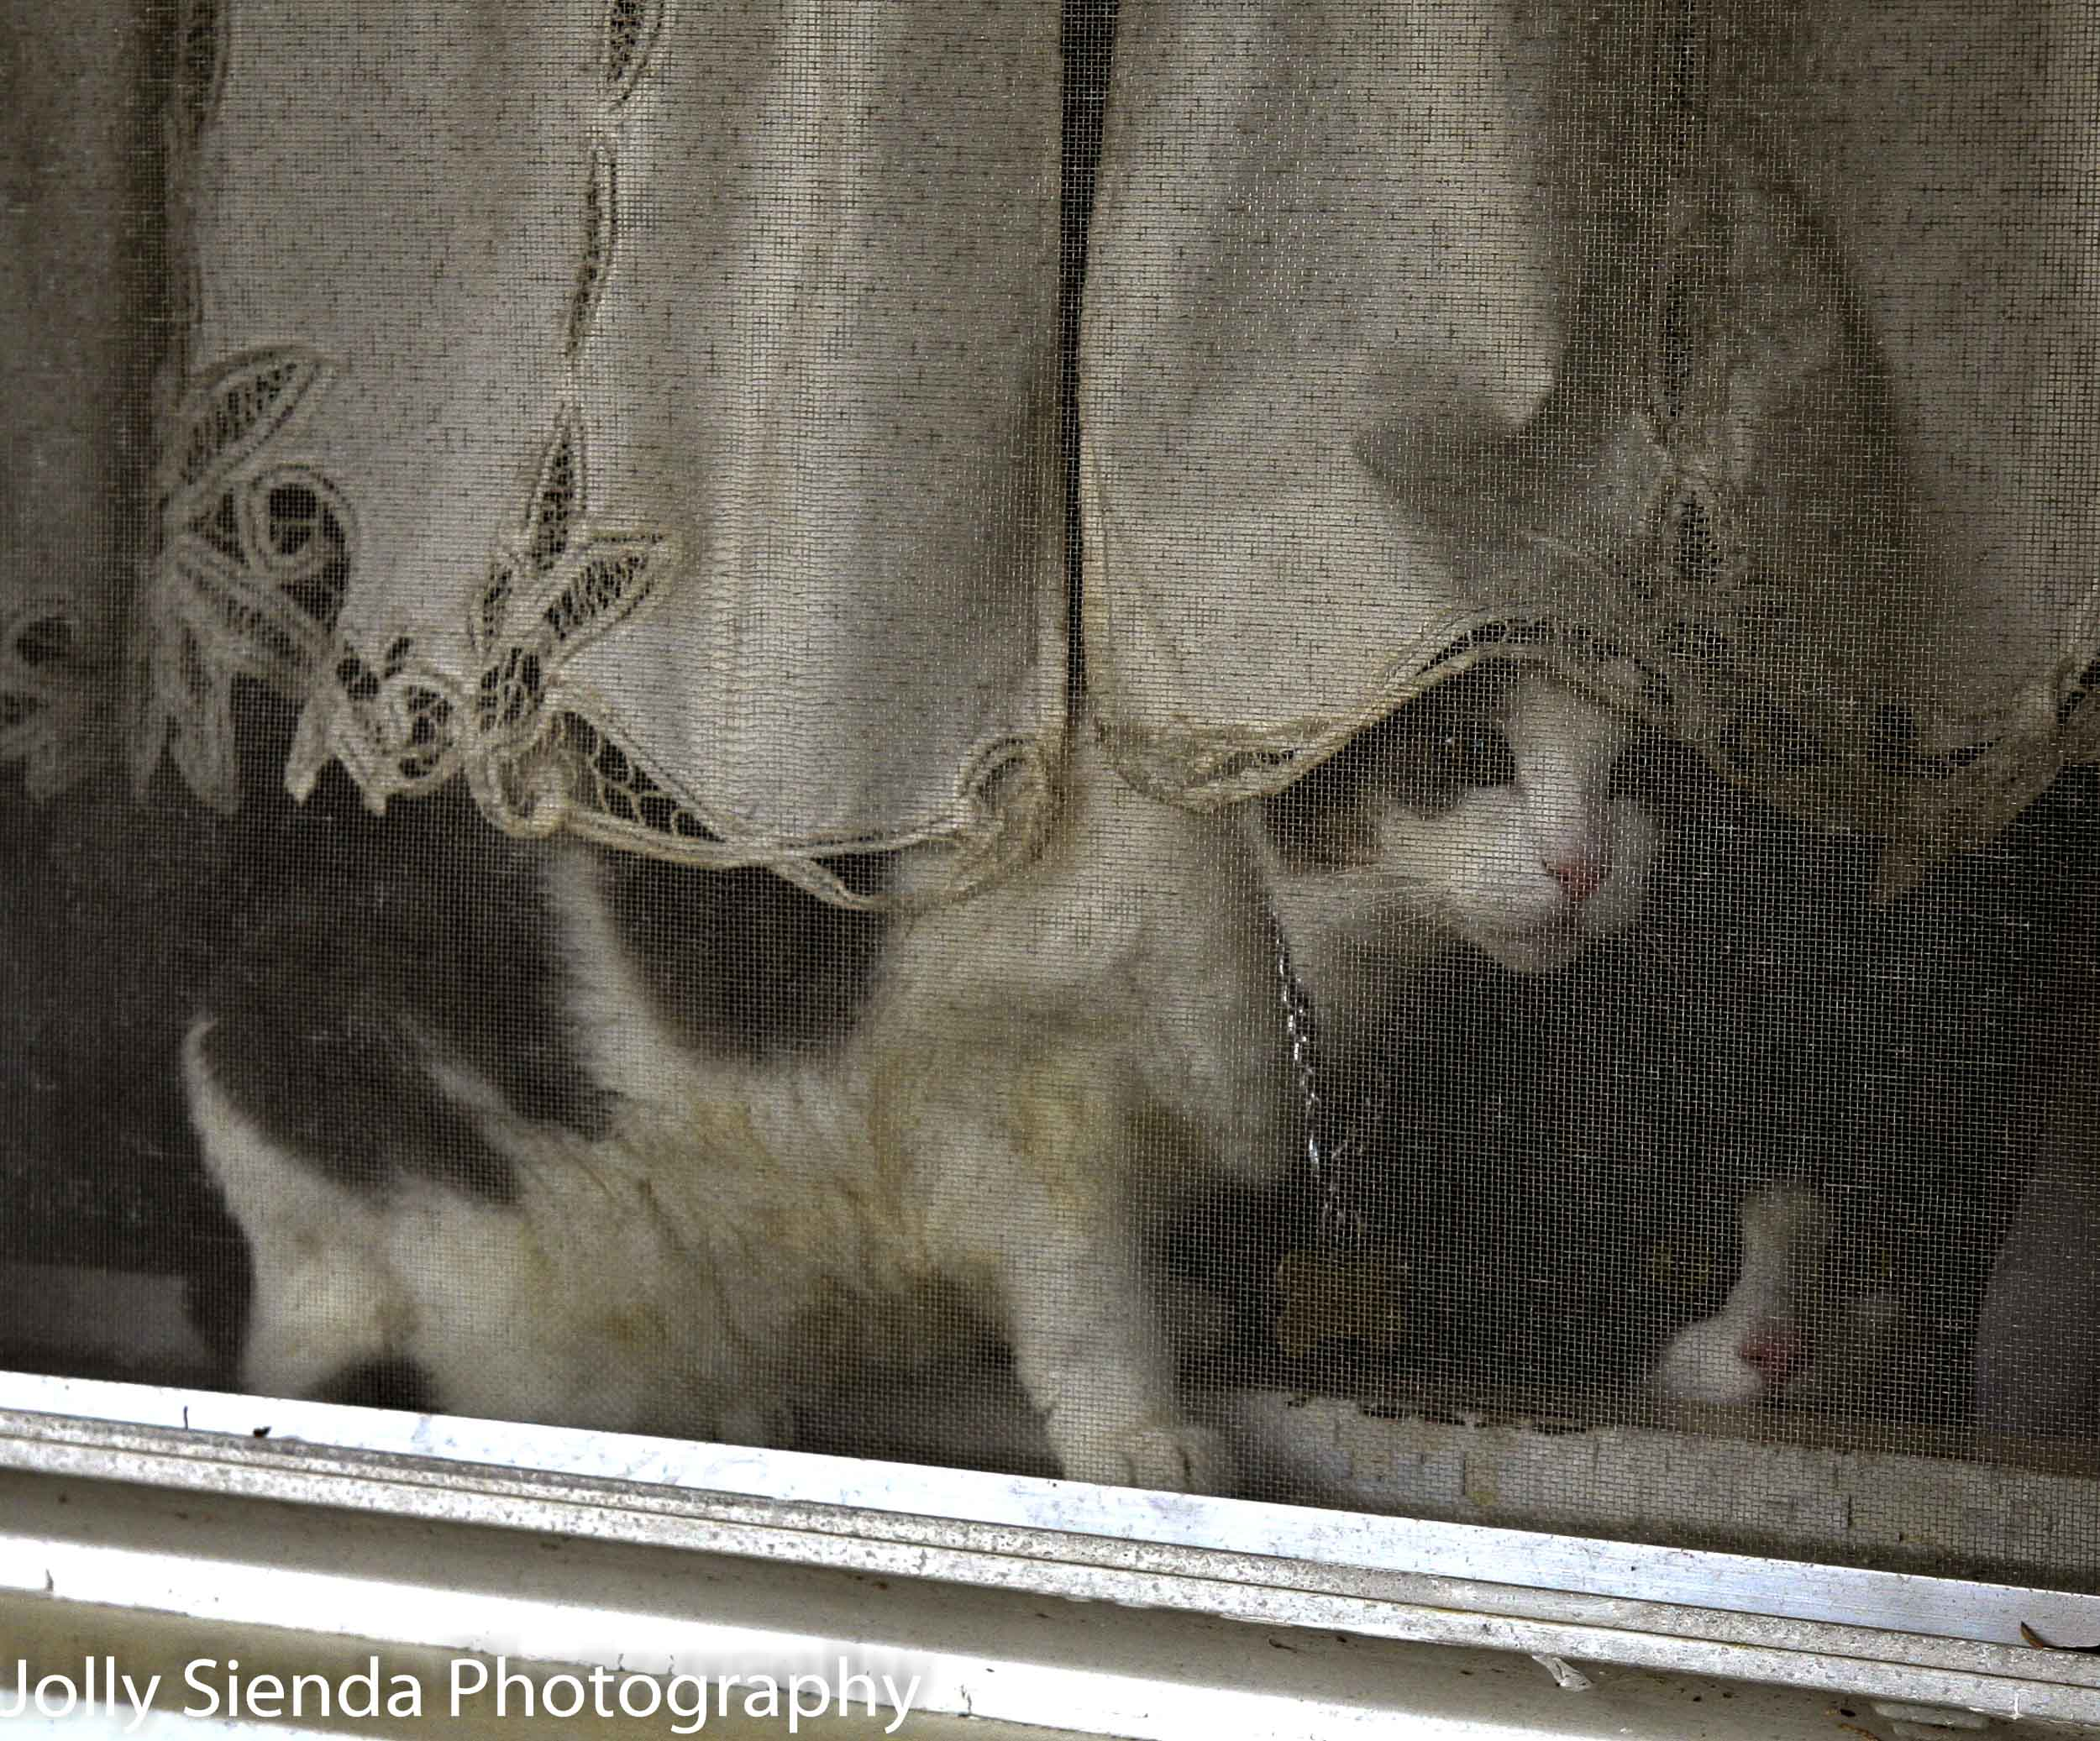 Cats peaking through a screen window